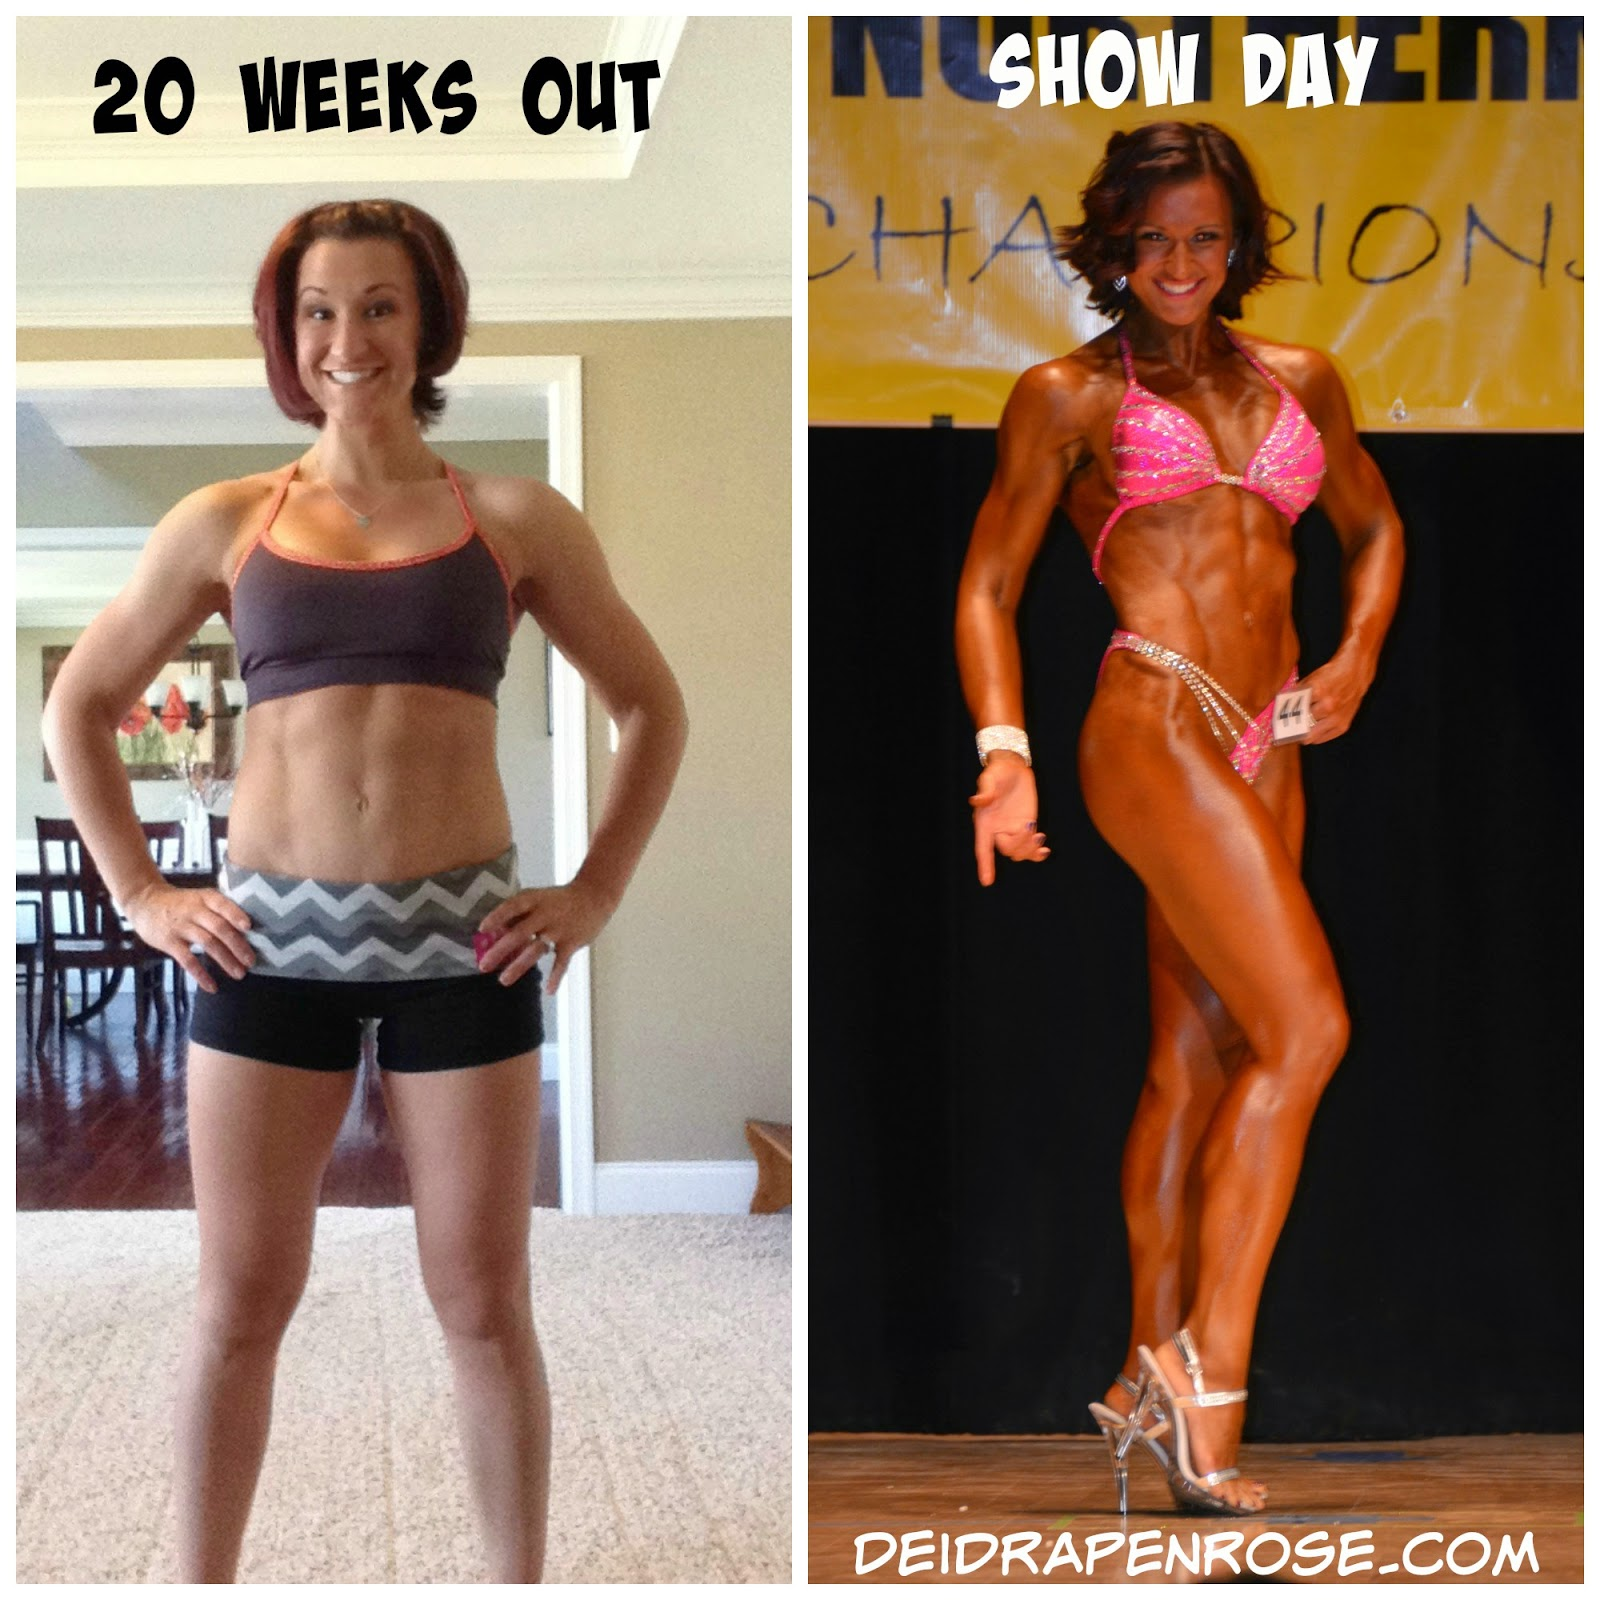 Deidra Penrose, NPC Figure Competitor, Figure Competition prep, insanity results, 21 day fix results, Insanity results, shakeology results, P90X3 results, health and fitness coach, beachbody coach Harrisburg, top fitness coach, fitness mom, family fitness, Natural Figure Competitor, fitness journey, weight loss journey, fitness motivation, fitness transformation, successful fitness coach, team beachbody, 7 star elite beachbody coach,